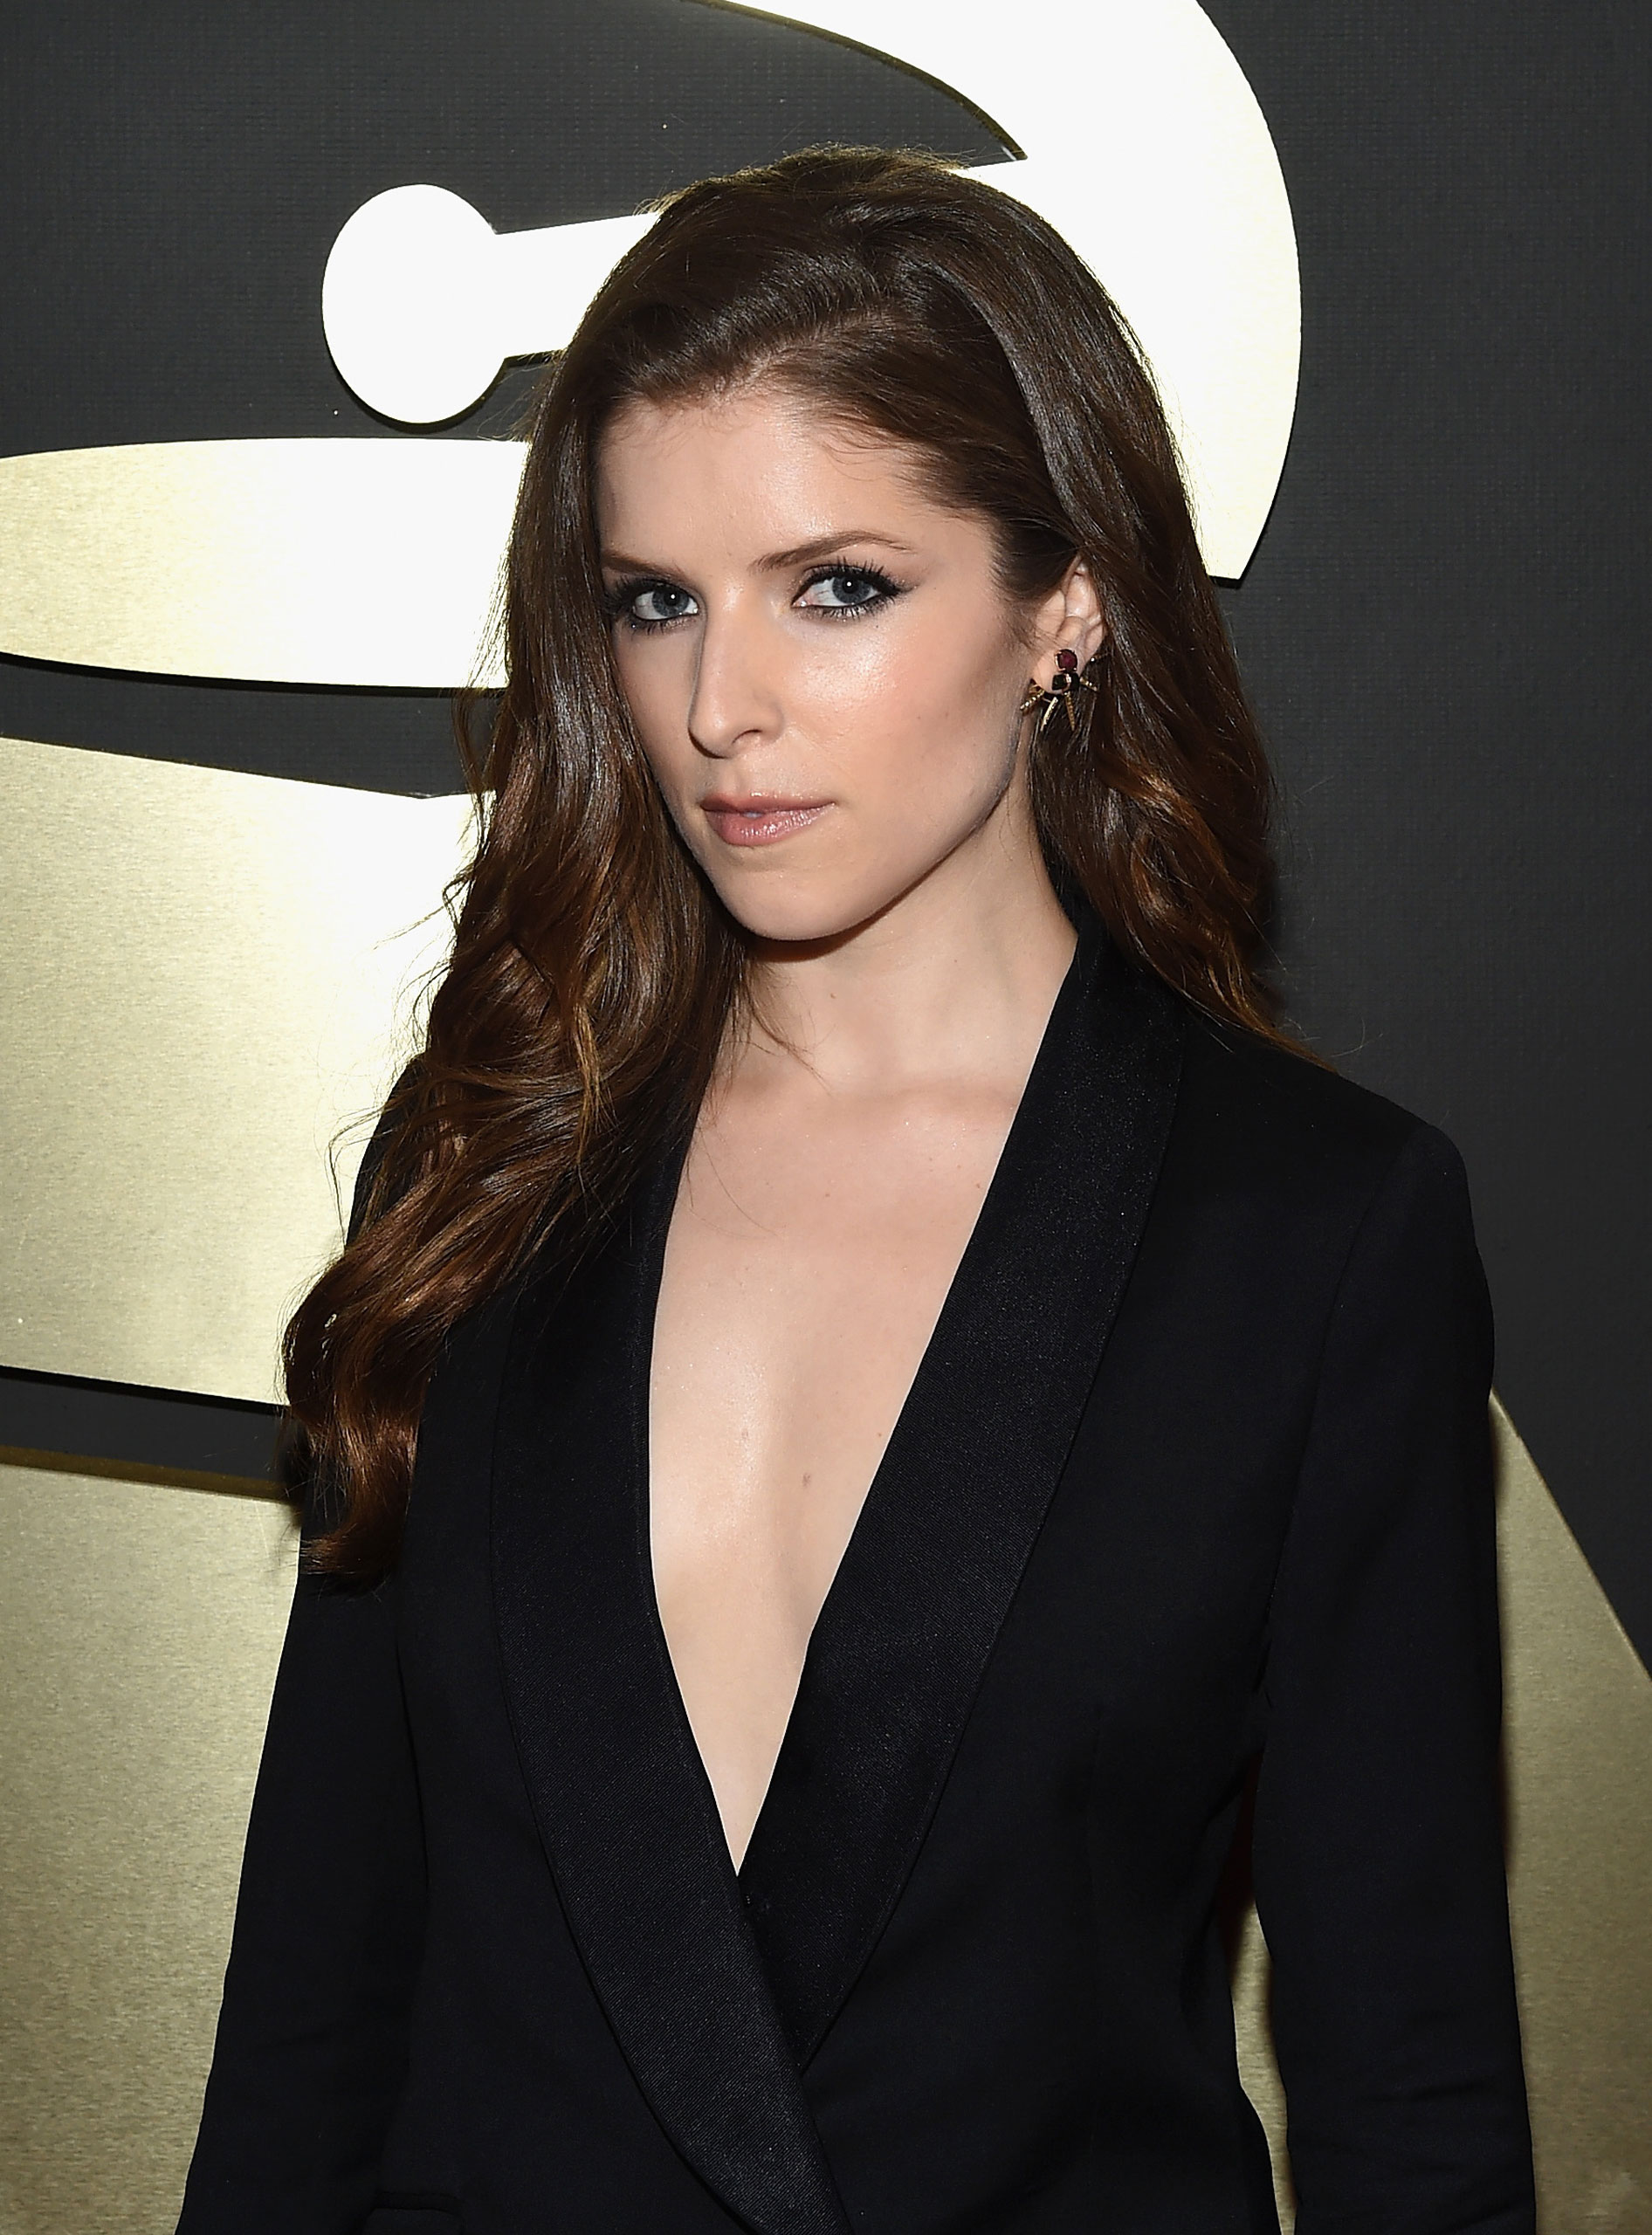 Anna Kendrick attends the 57th Annual Grammy Awards at the Staples Center on Feb. 8, 2015 in Los Angeles, Calif.